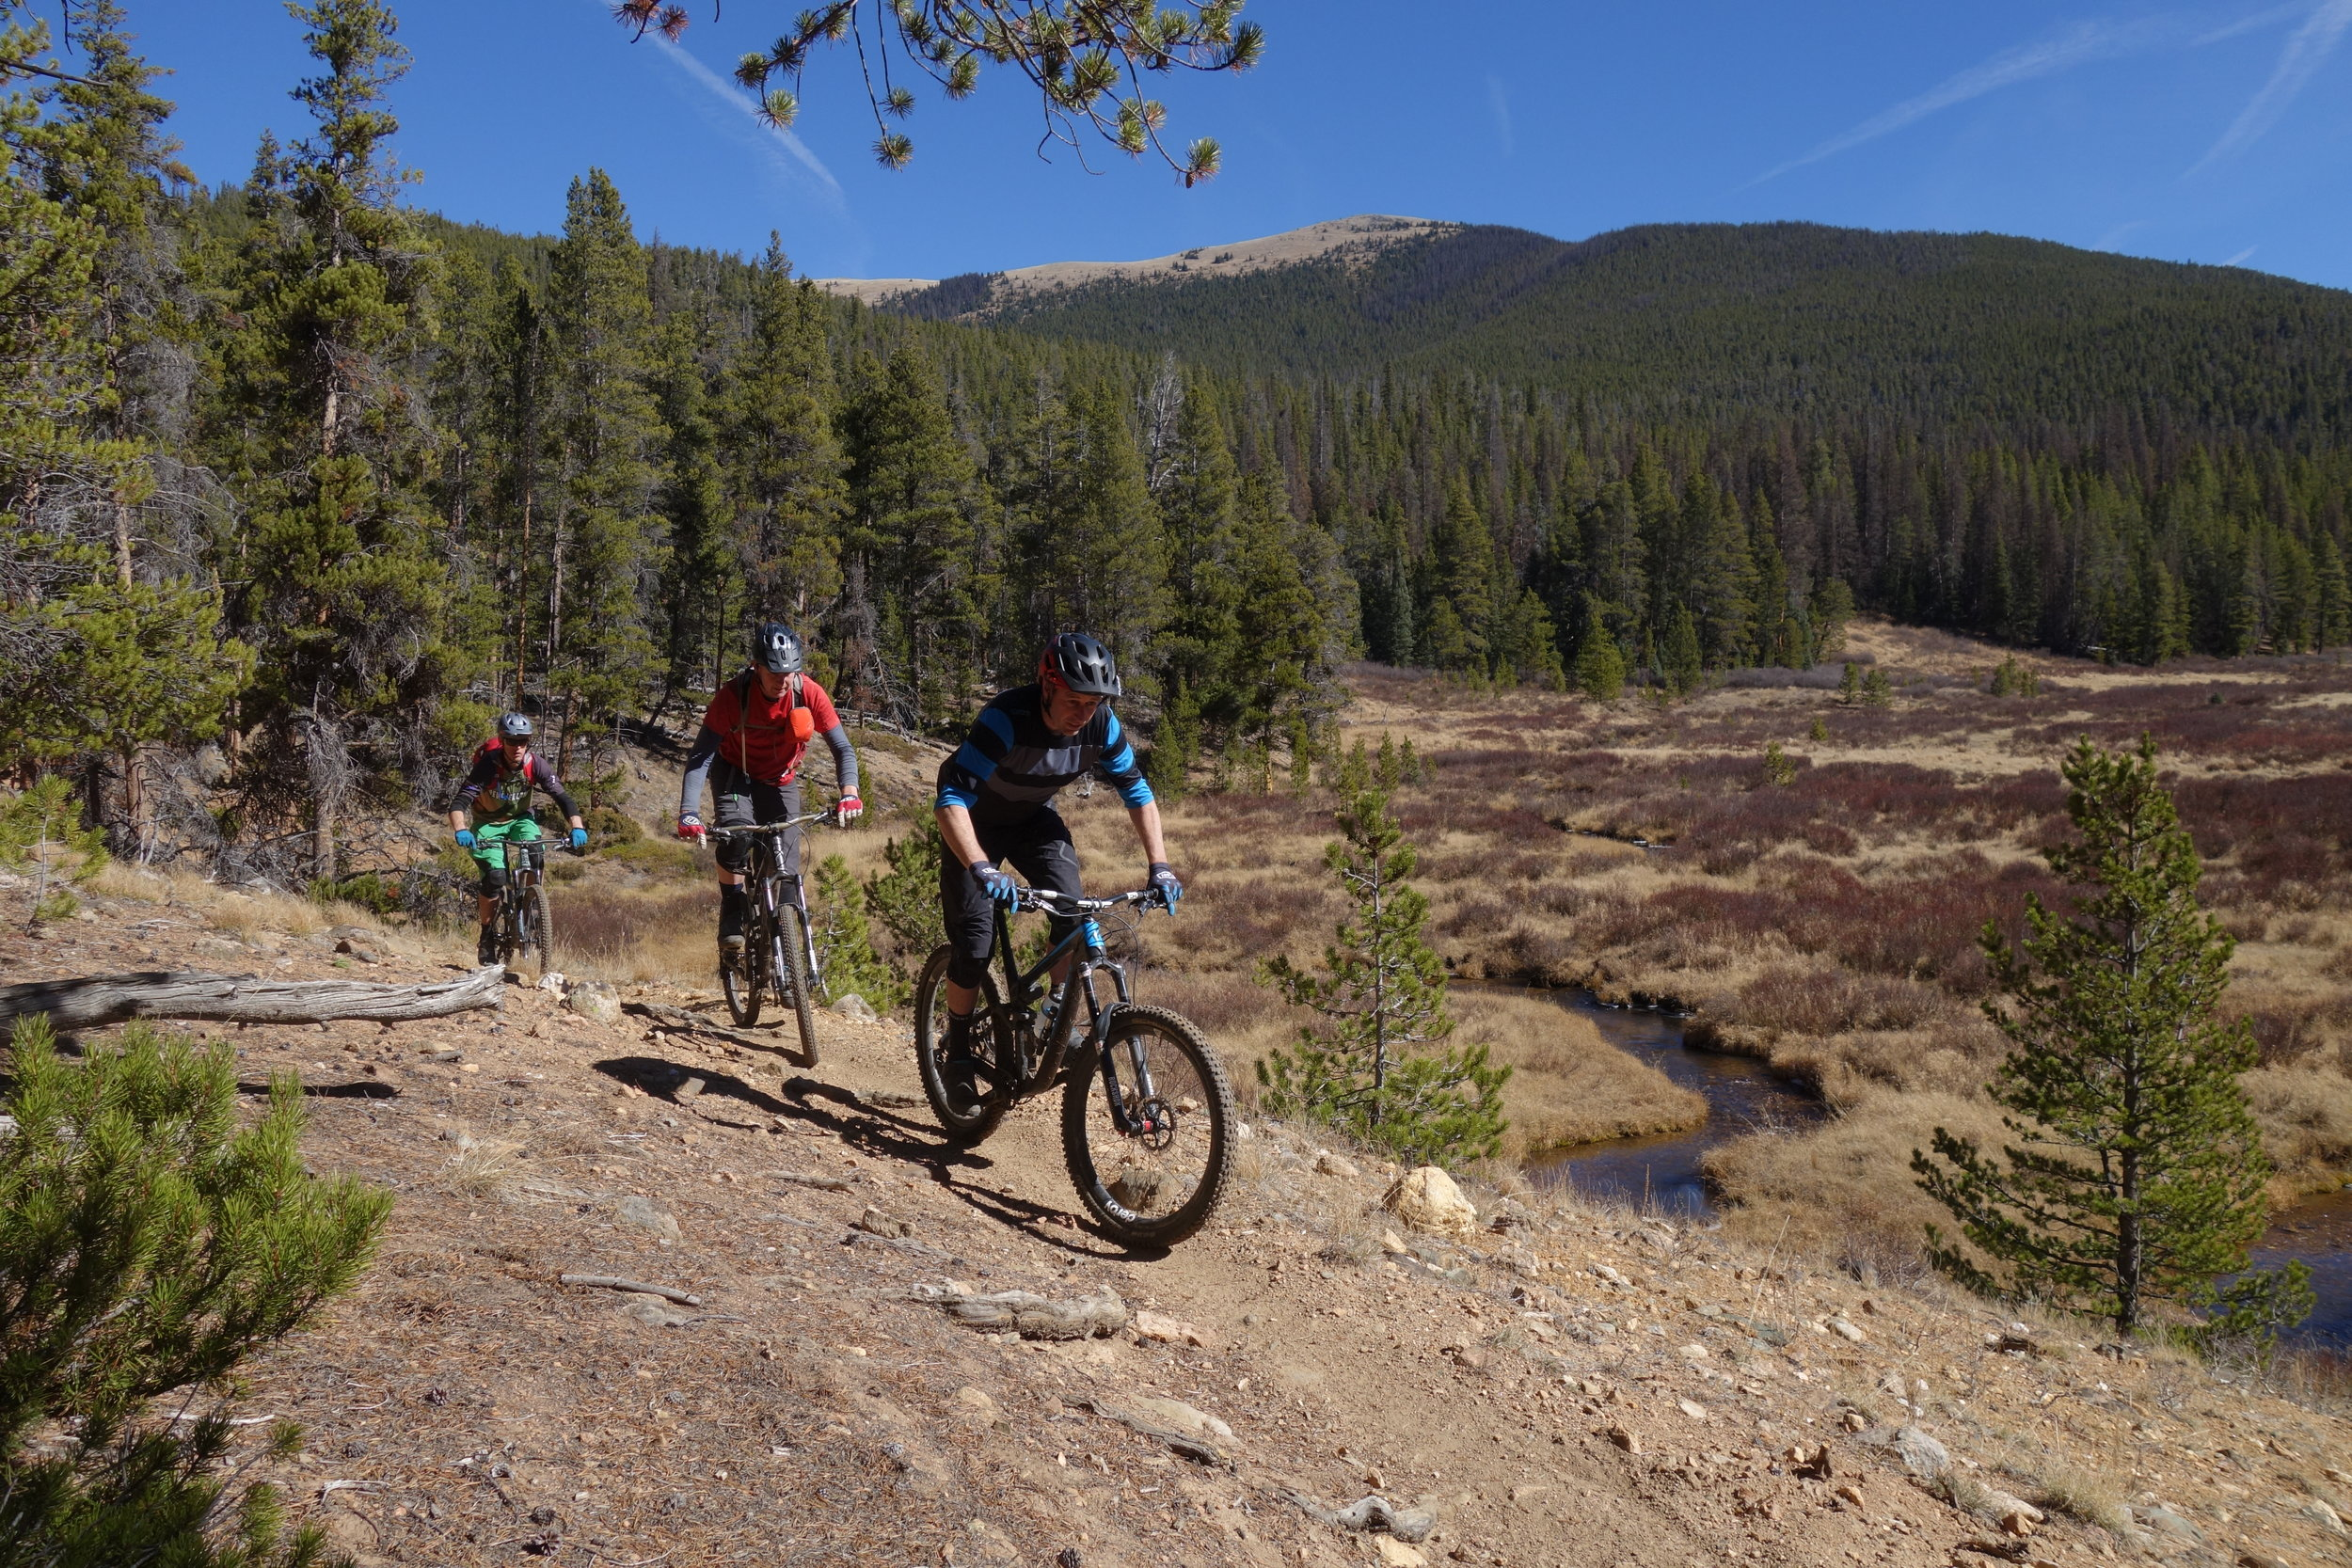 It was very specail to be able to ride downhill for so long beside the creek with stunning views and the odd squirrel to keep us company. Jeff, Stefan and Tim.